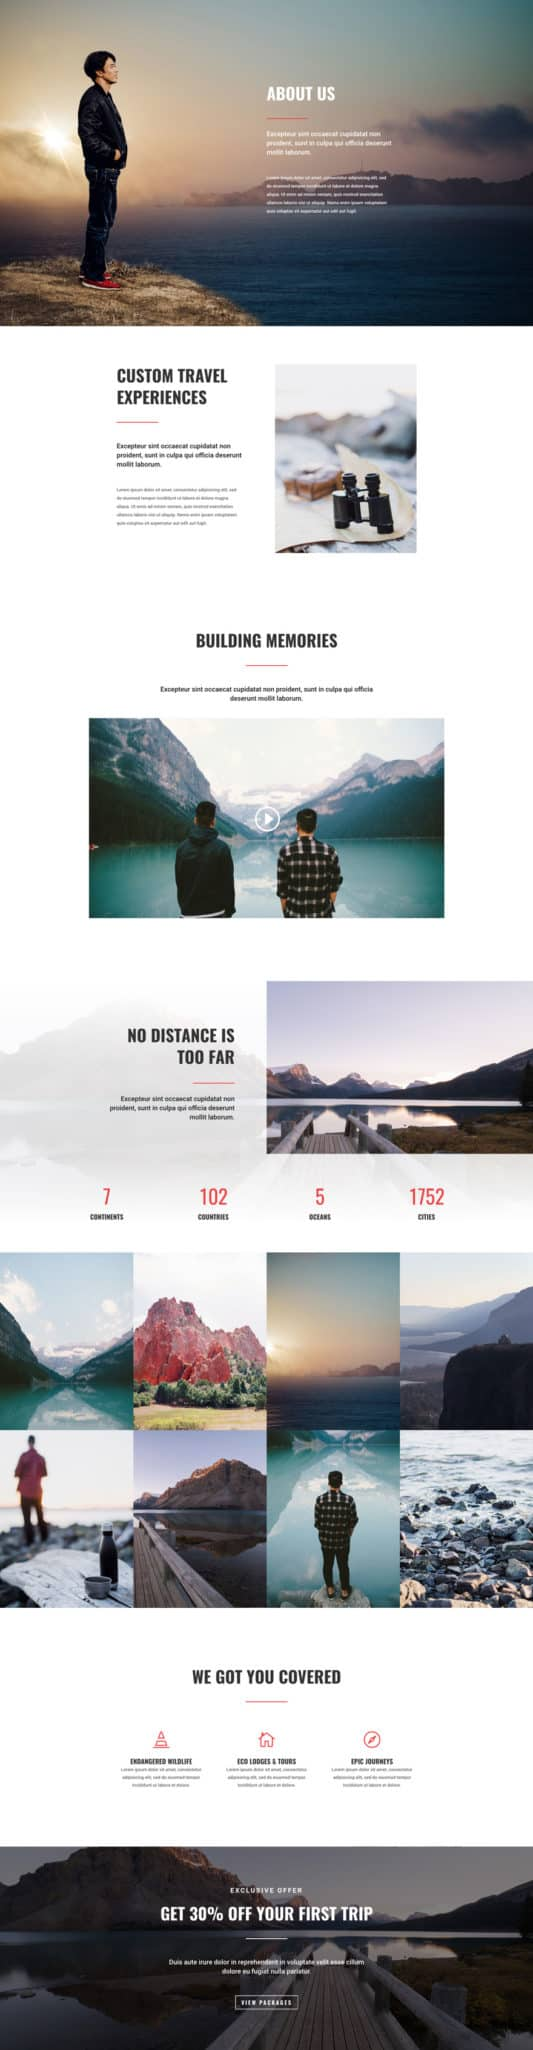 Travel Agency Web Design 1